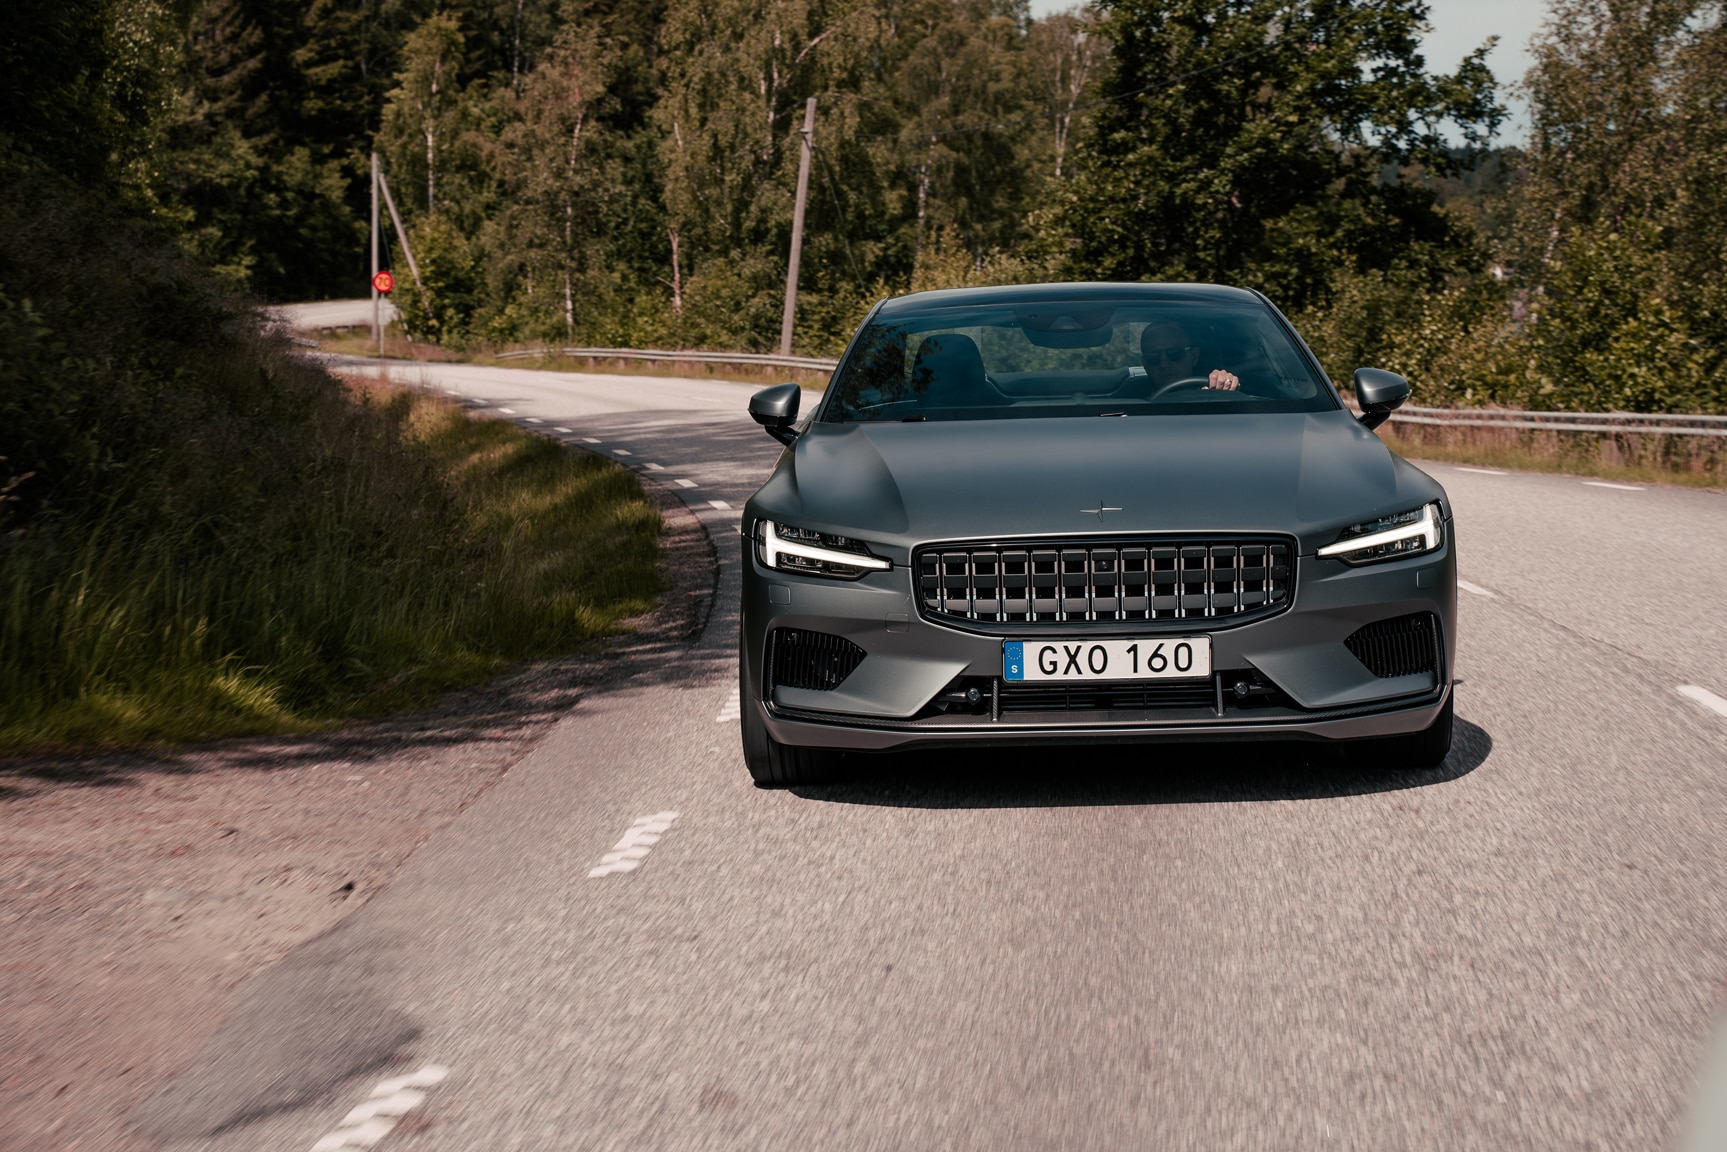 2020 Polestar 1 Prototype First Drive: Wonderfully Special